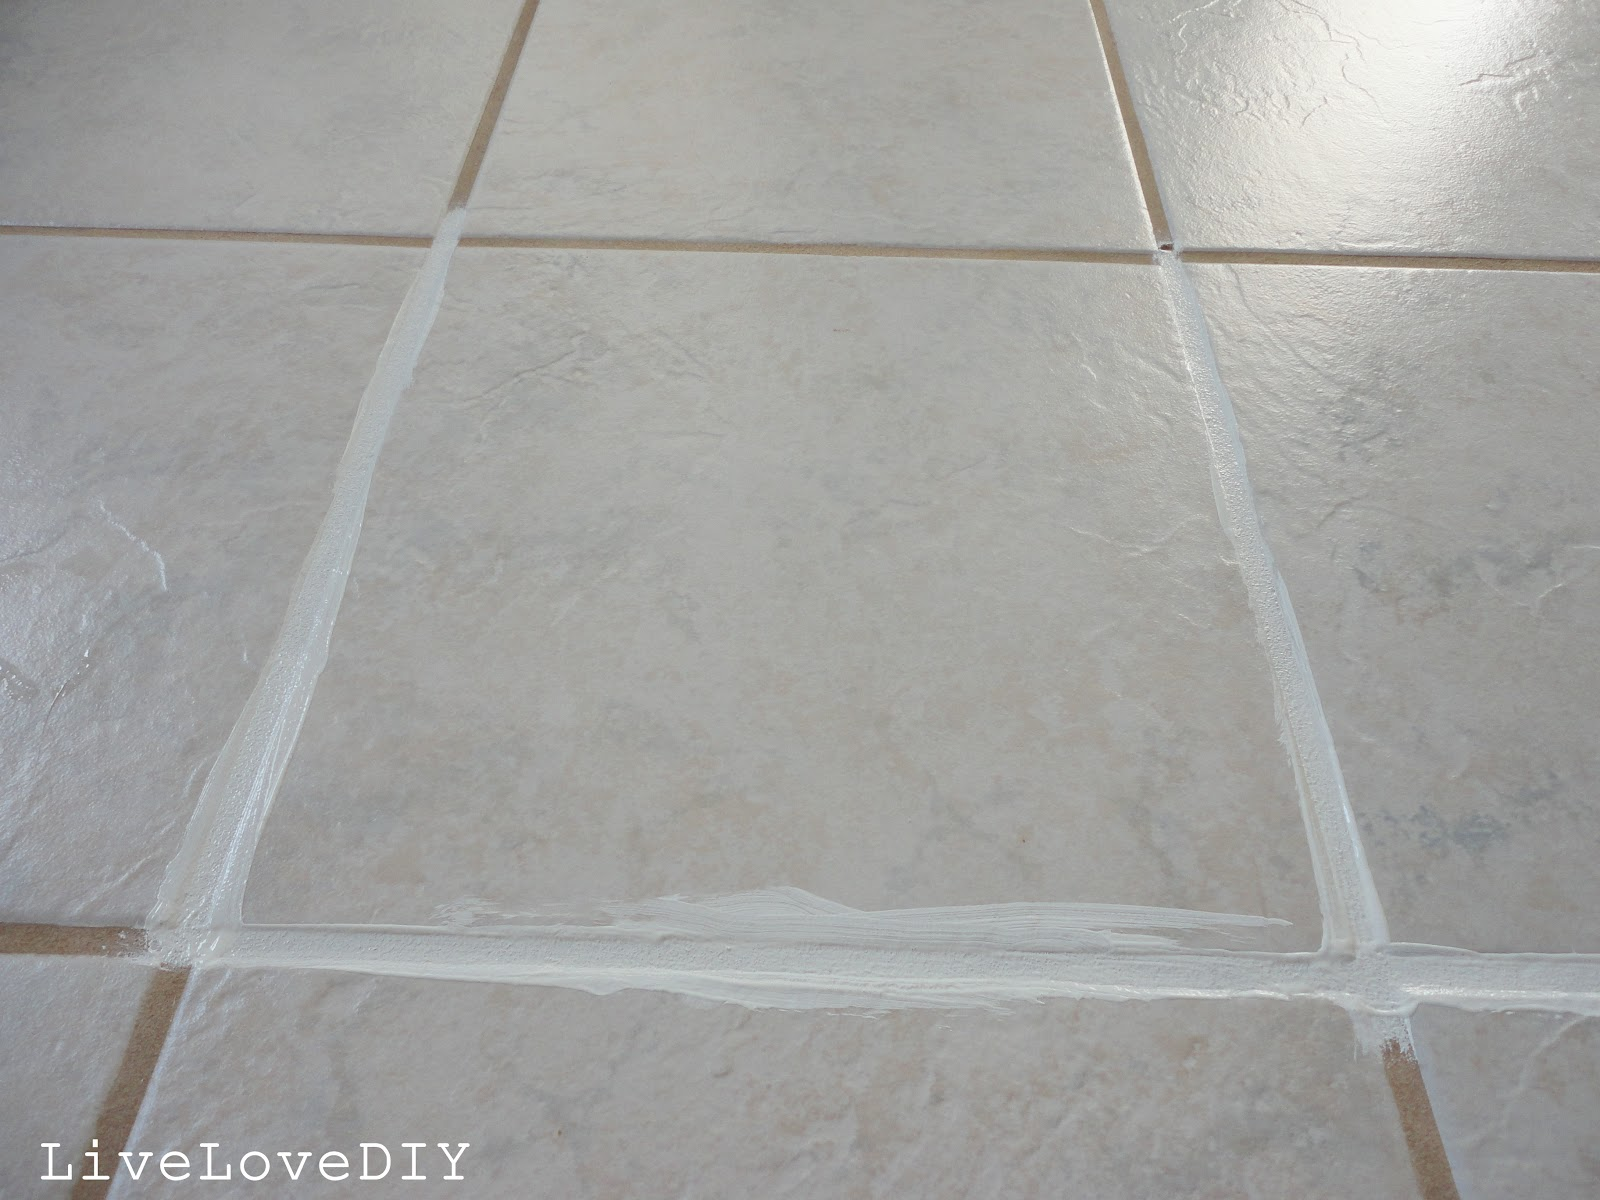 Livelovediy how to restore dirty tile grout livelovediy dailygadgetfo Image collections